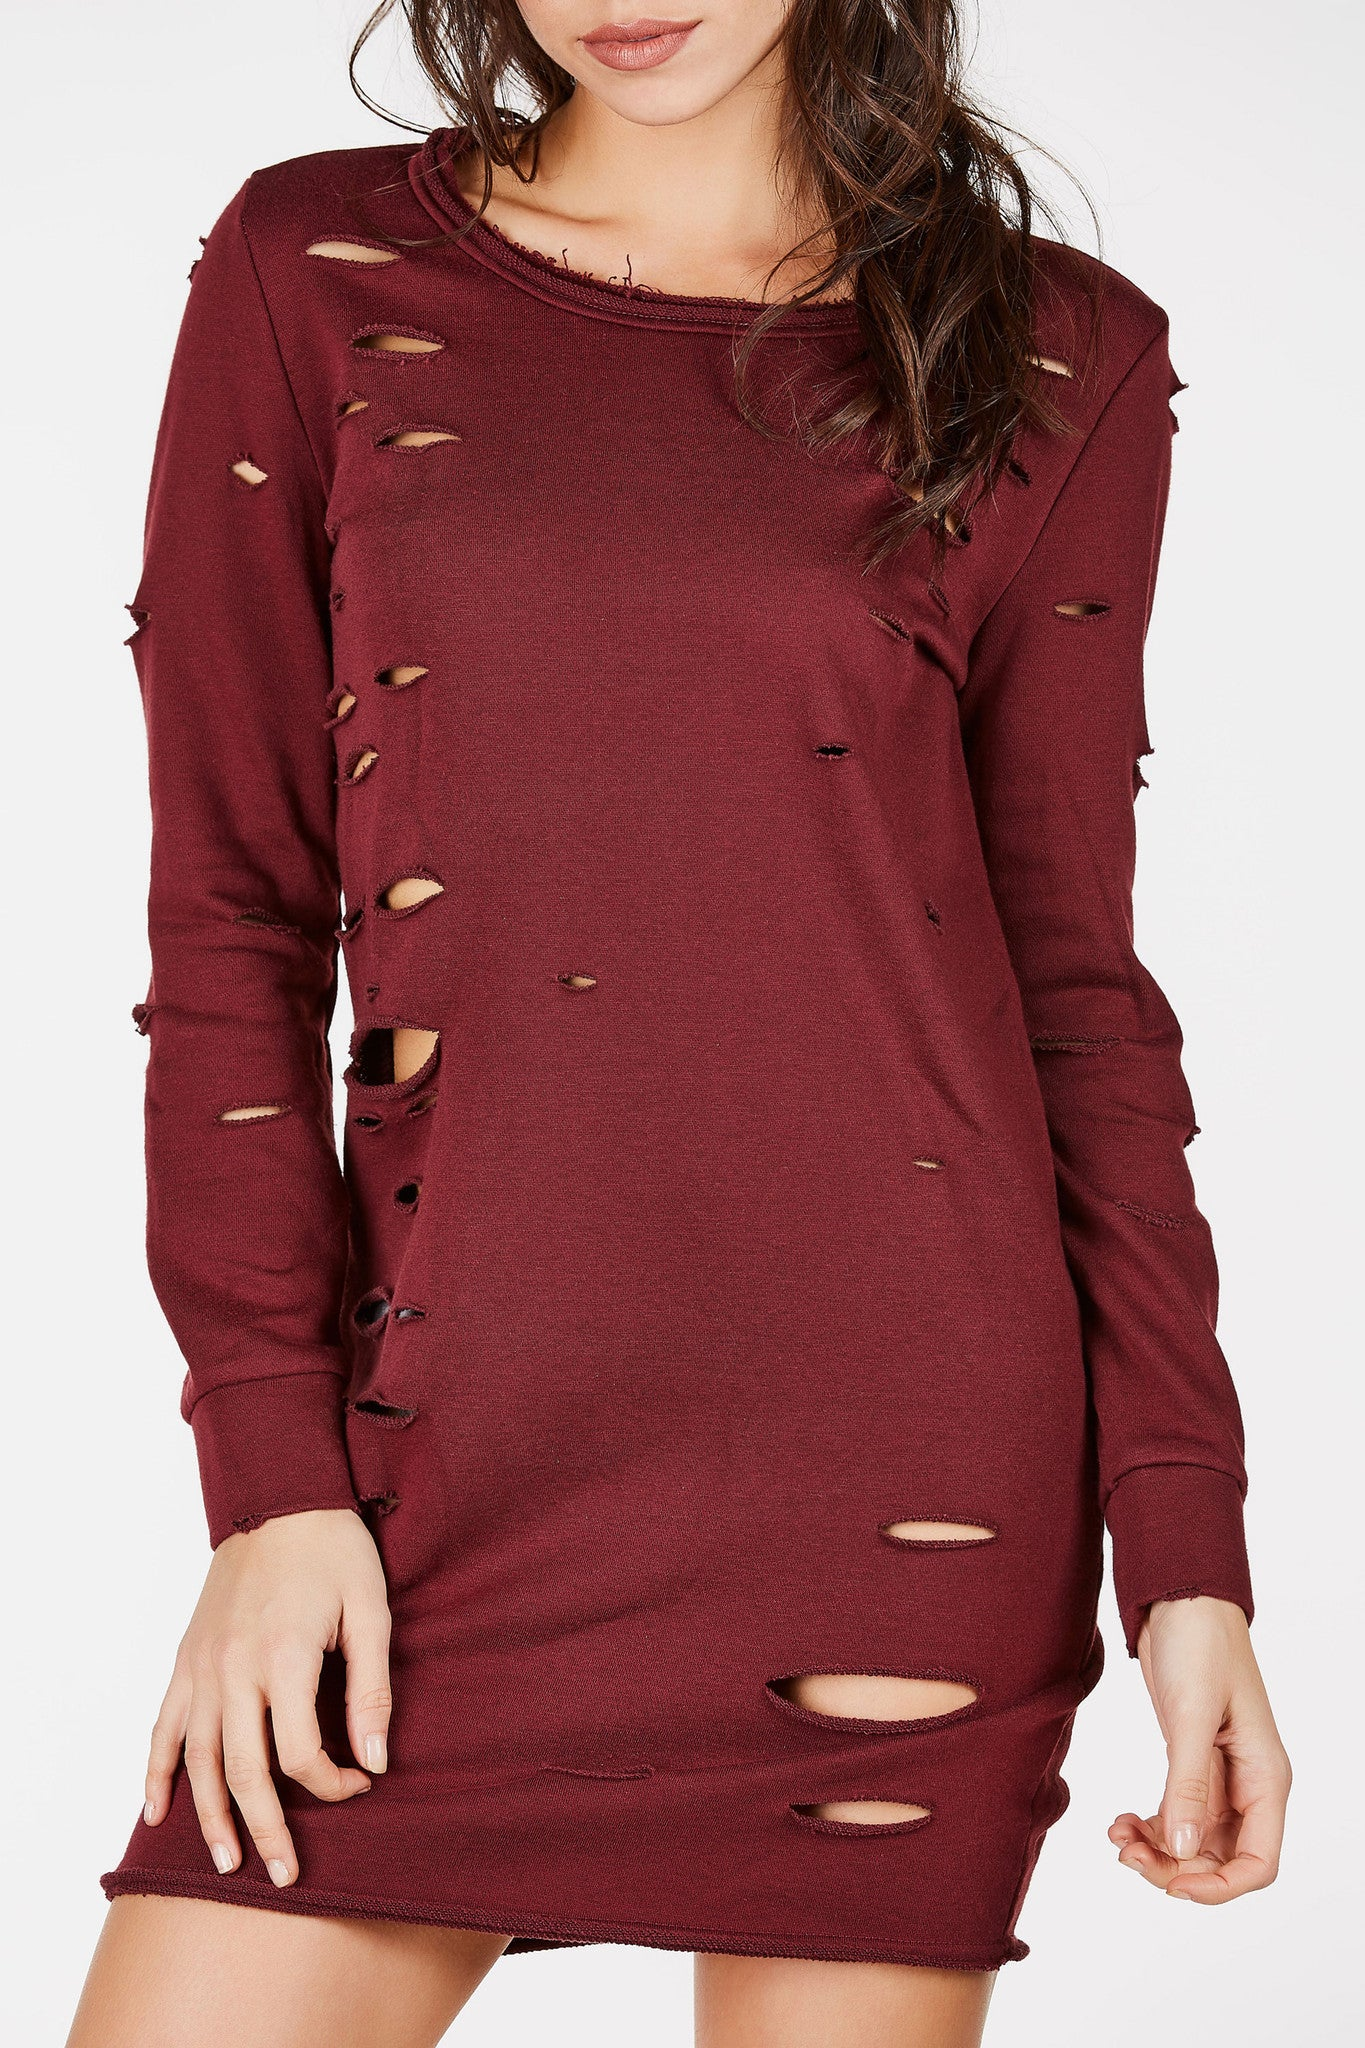 Distressed tunic dress with long sleeves.  With a sweatshirt style and feel, you can dress it up with a pair of thigh high boots or dress it down with sneakers.